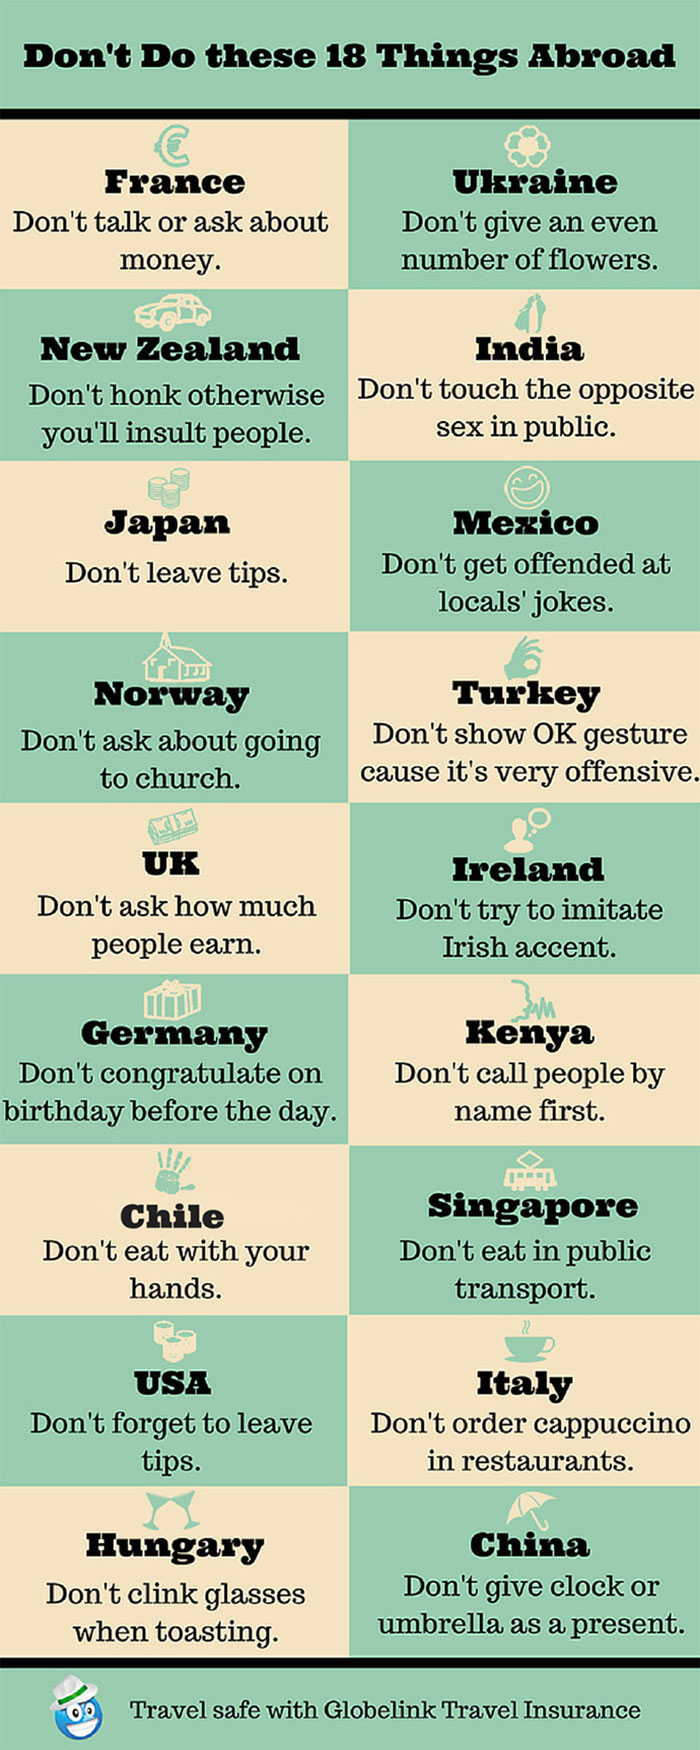 Travelling Abroad: 18 Things You Should Never Do